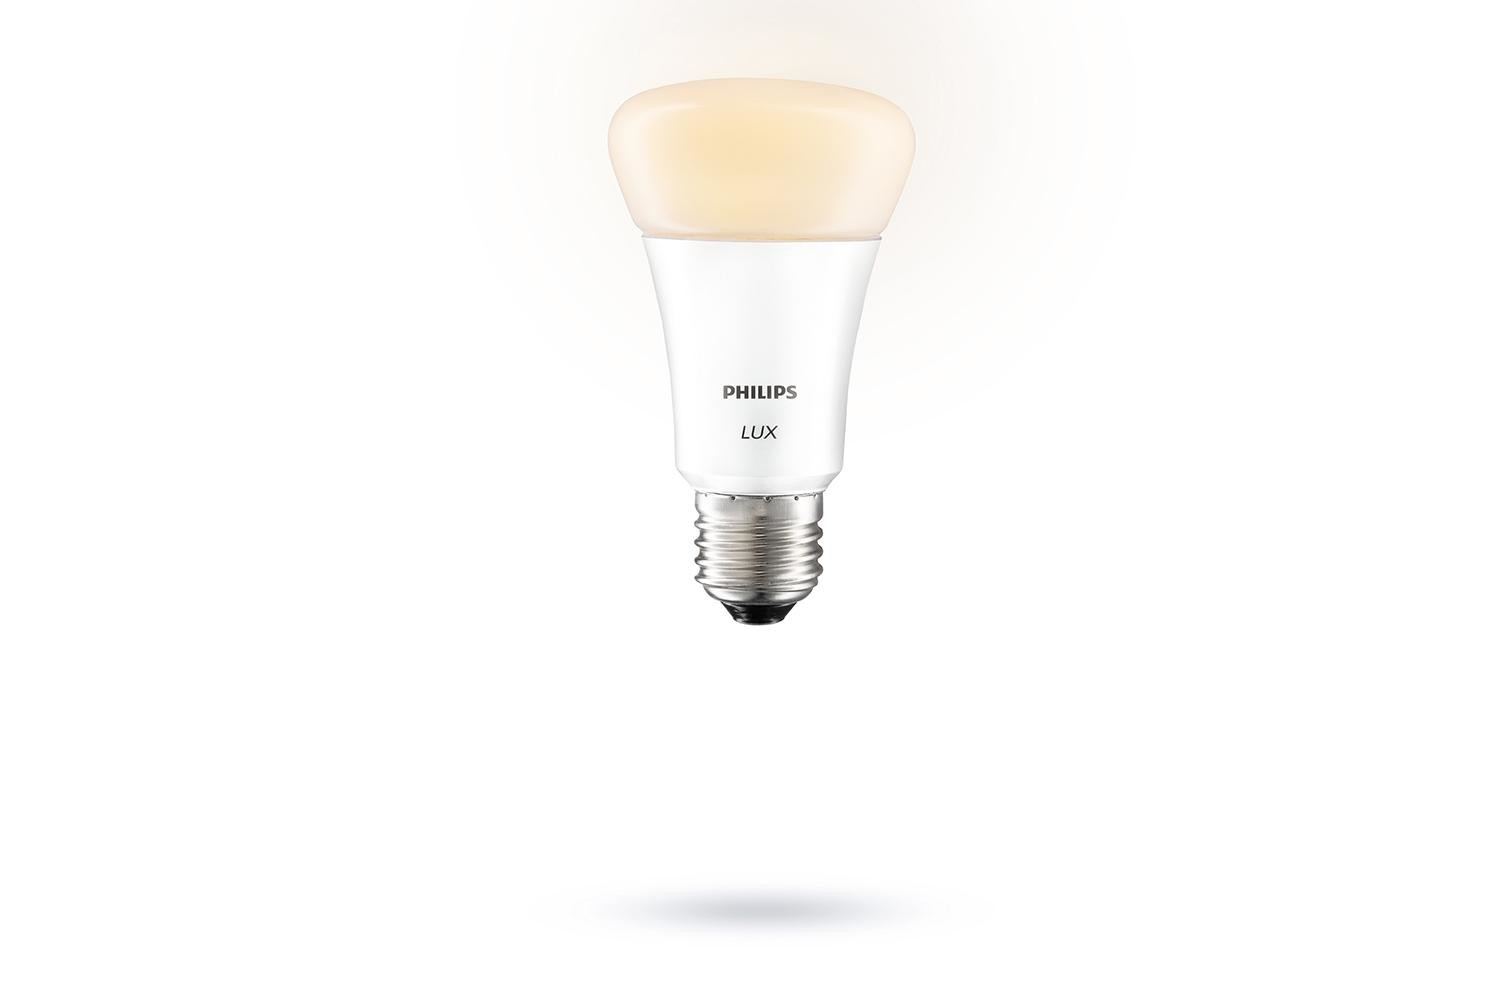 lux bulb on